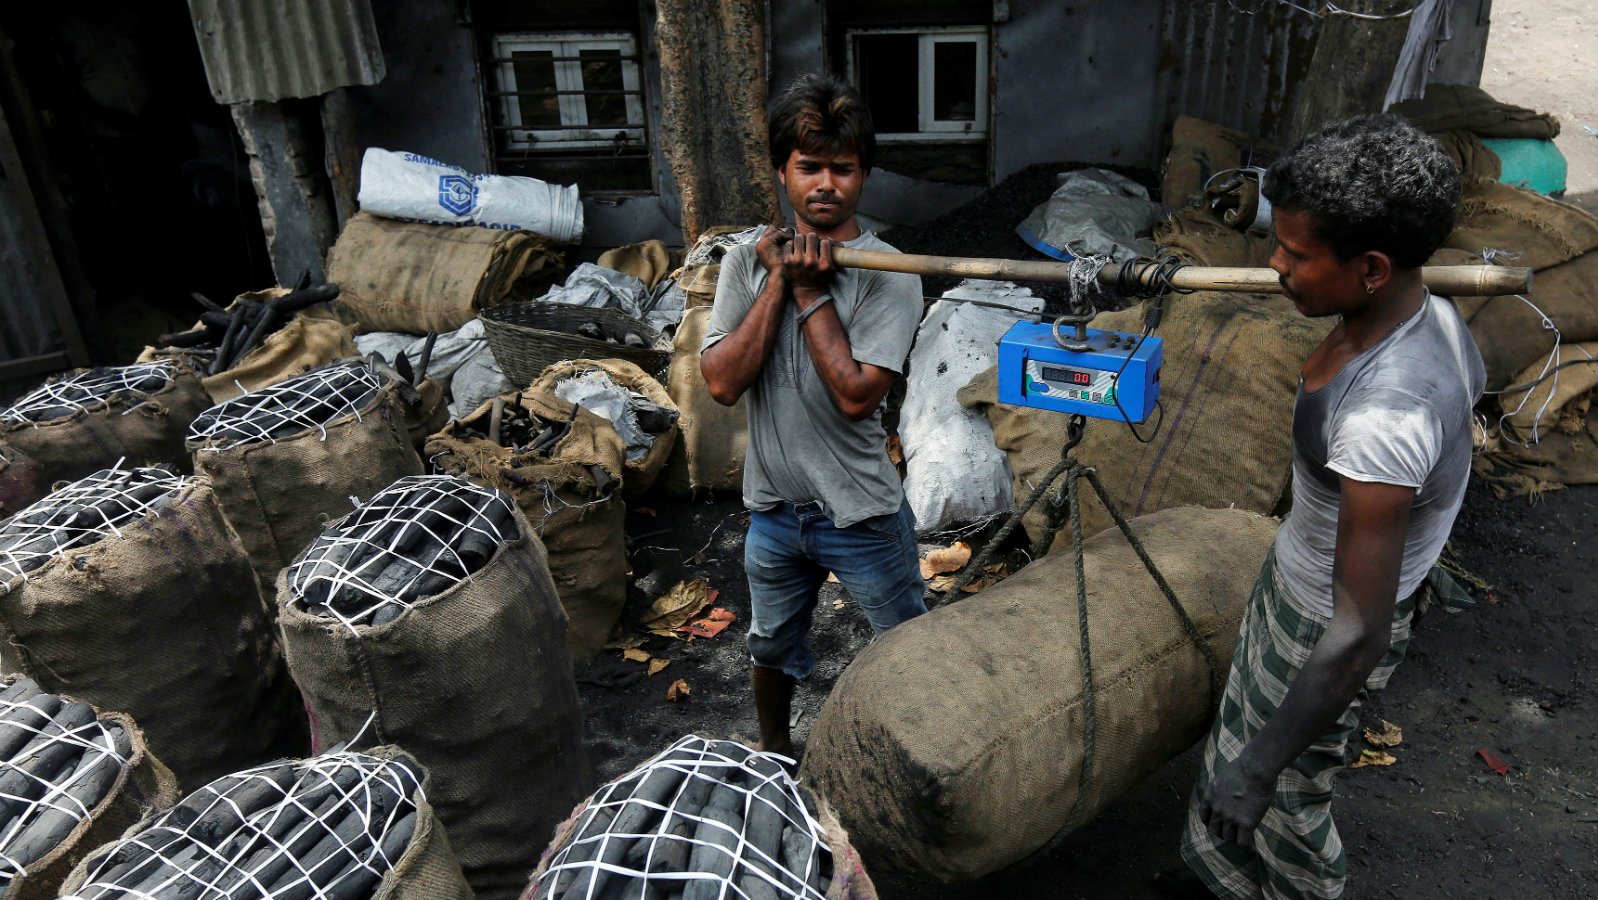 Workers weigh a bag of coal outside a warehouse in an industrial area in Mumbai, India May 31, 2017.